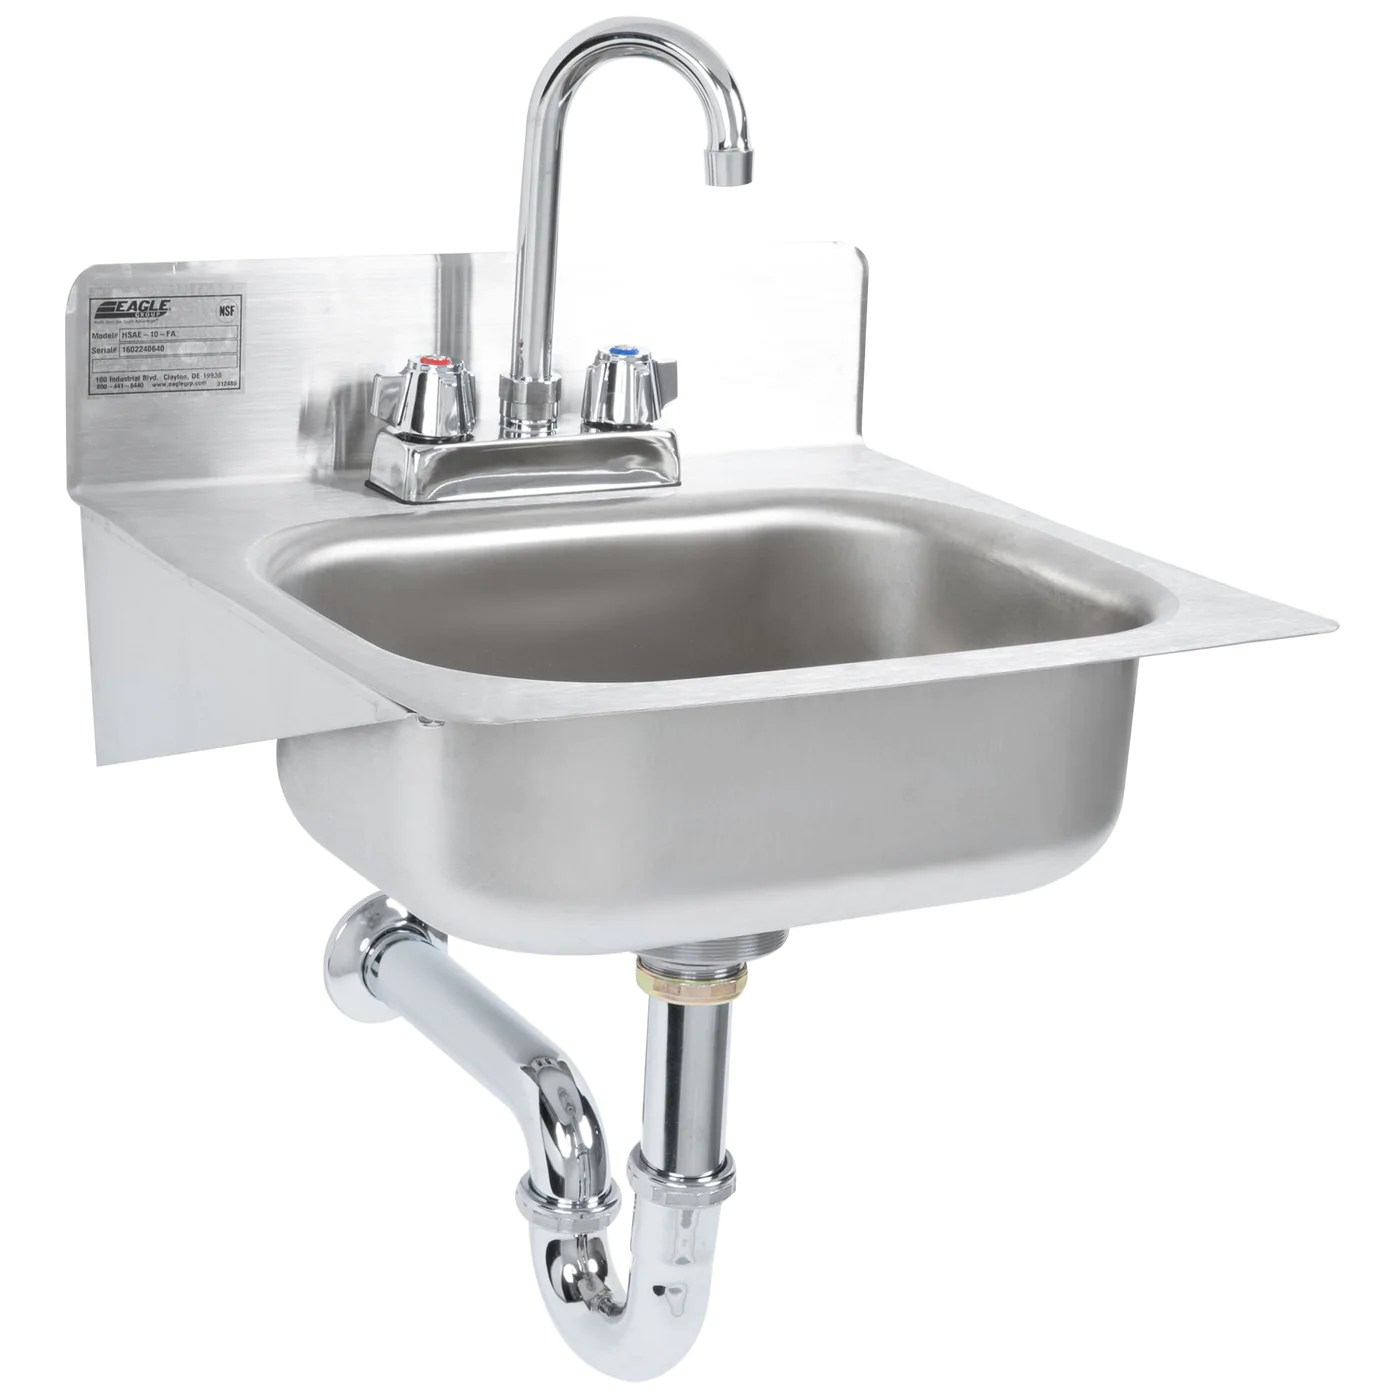 eagle group hsae 10 fa 14 hand sink with gooseneck faucet basket drain p trap and tail piece